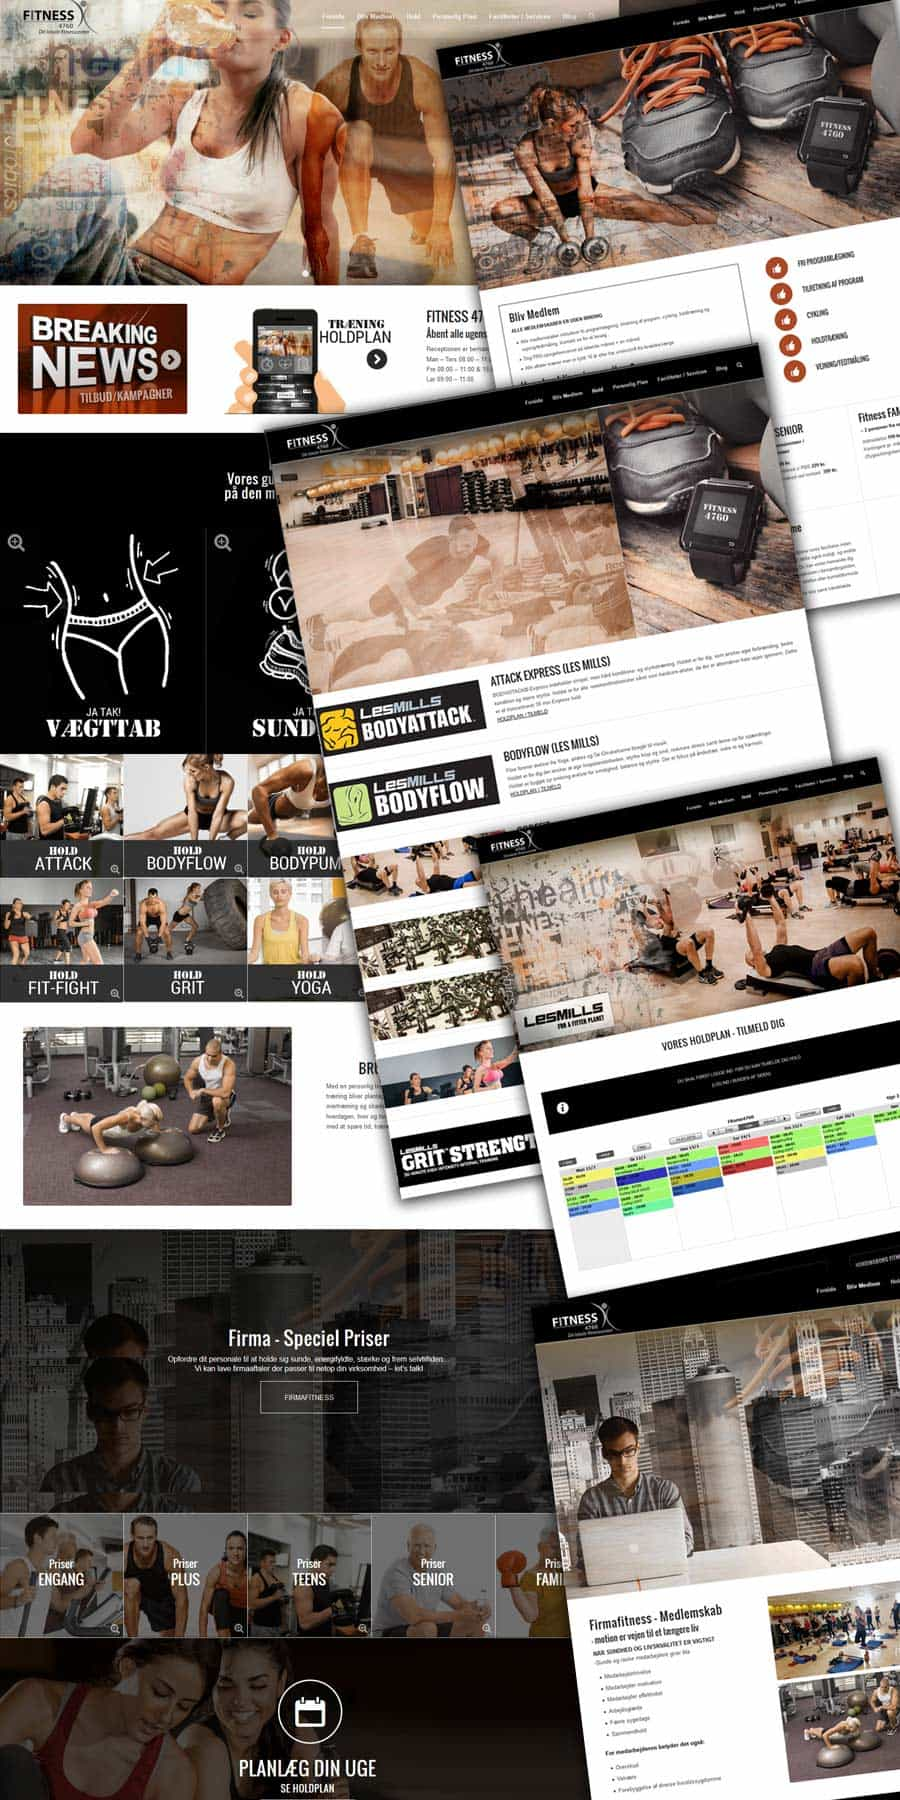 Screenshots af fitness center wordpress hjemmeside sider